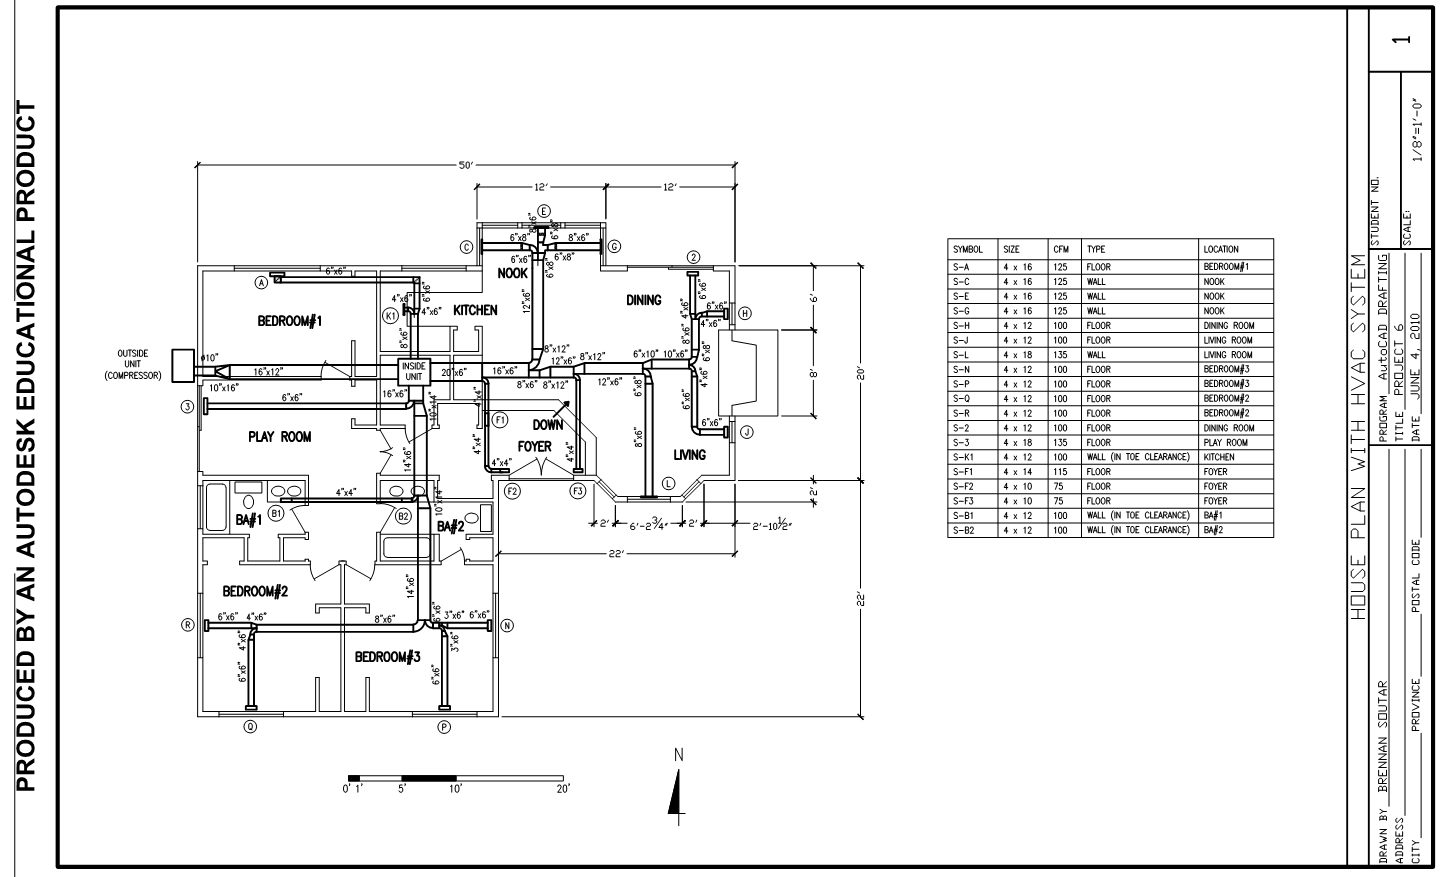 Hvac And Electrical Layouts